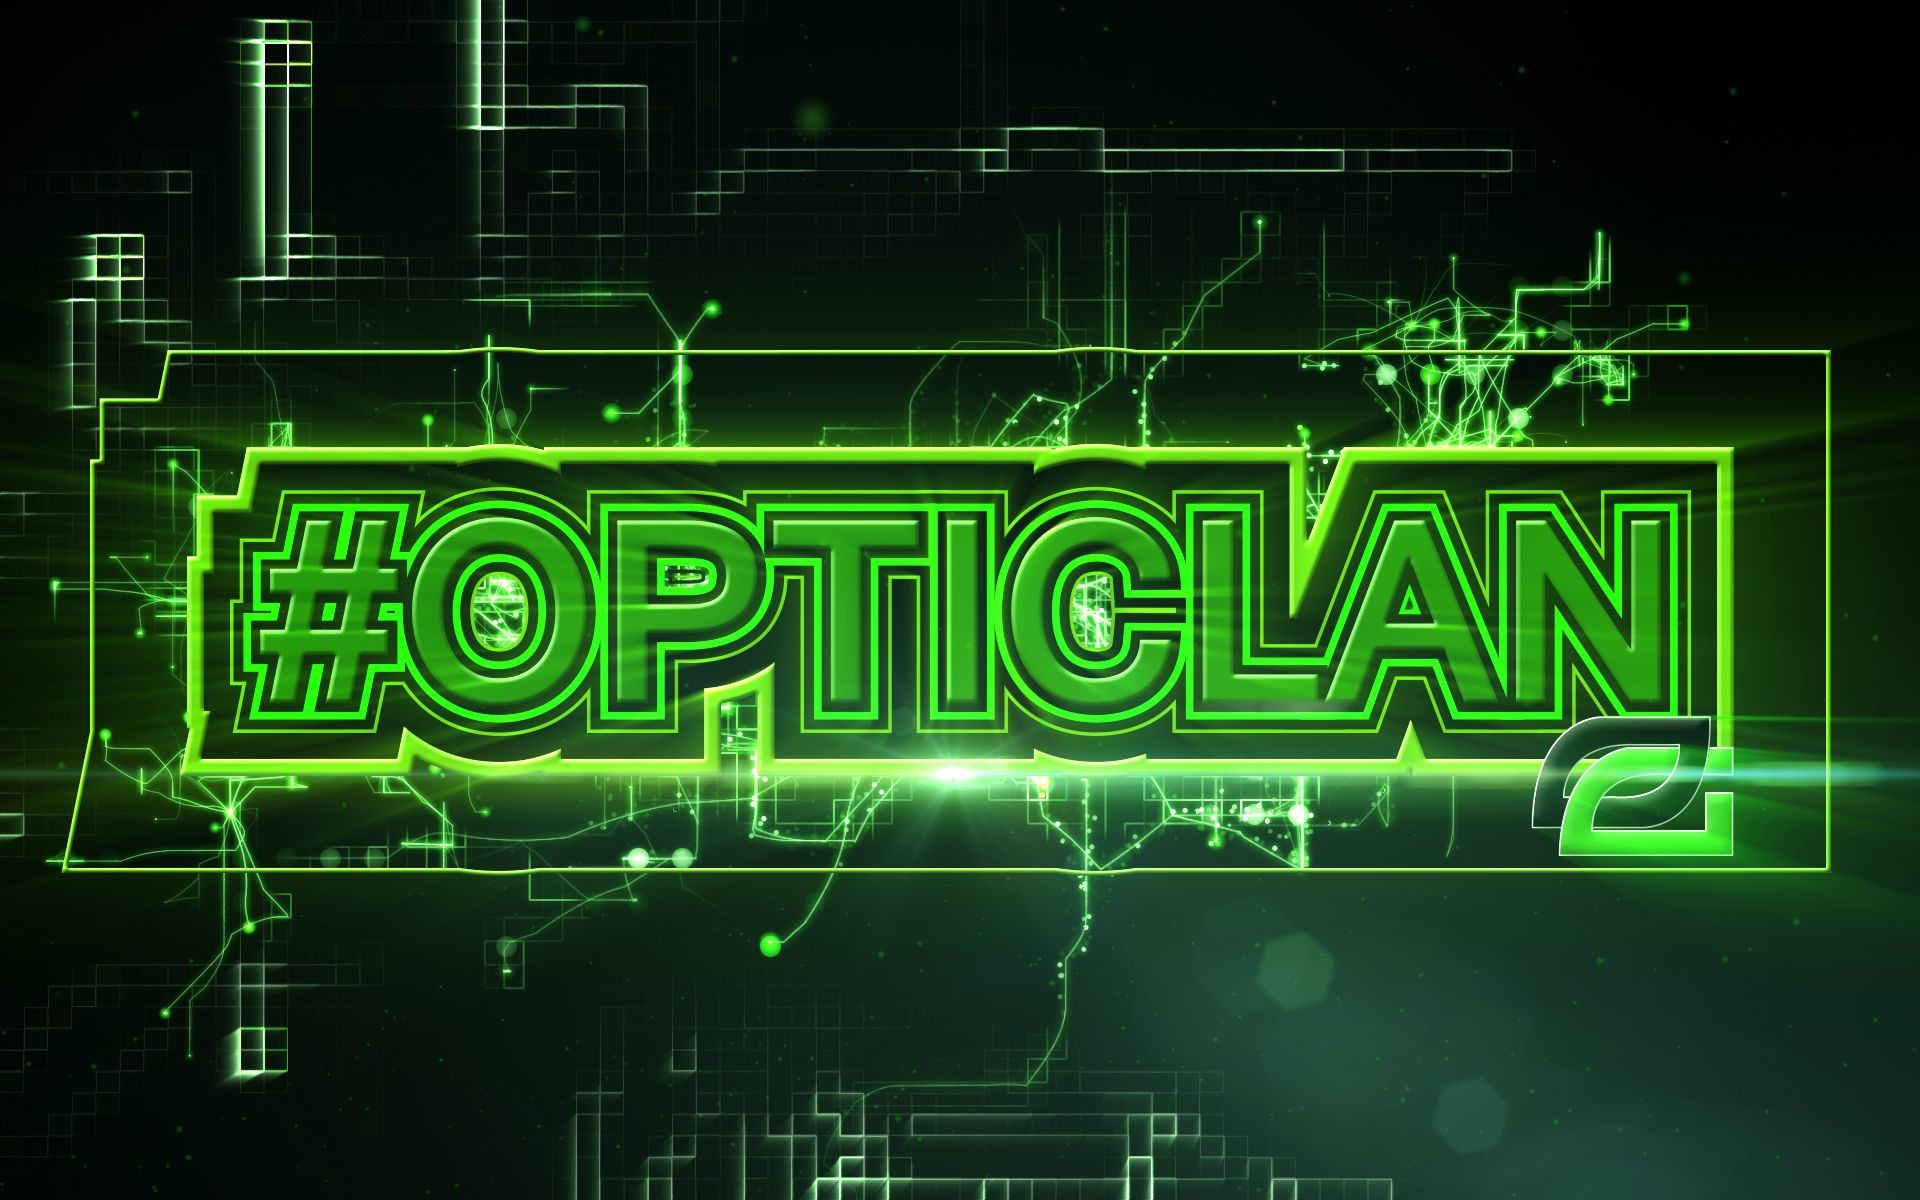 1920x1200 #OpTicLan.  Wallpaper for support of OpTic Gaming Organisation.